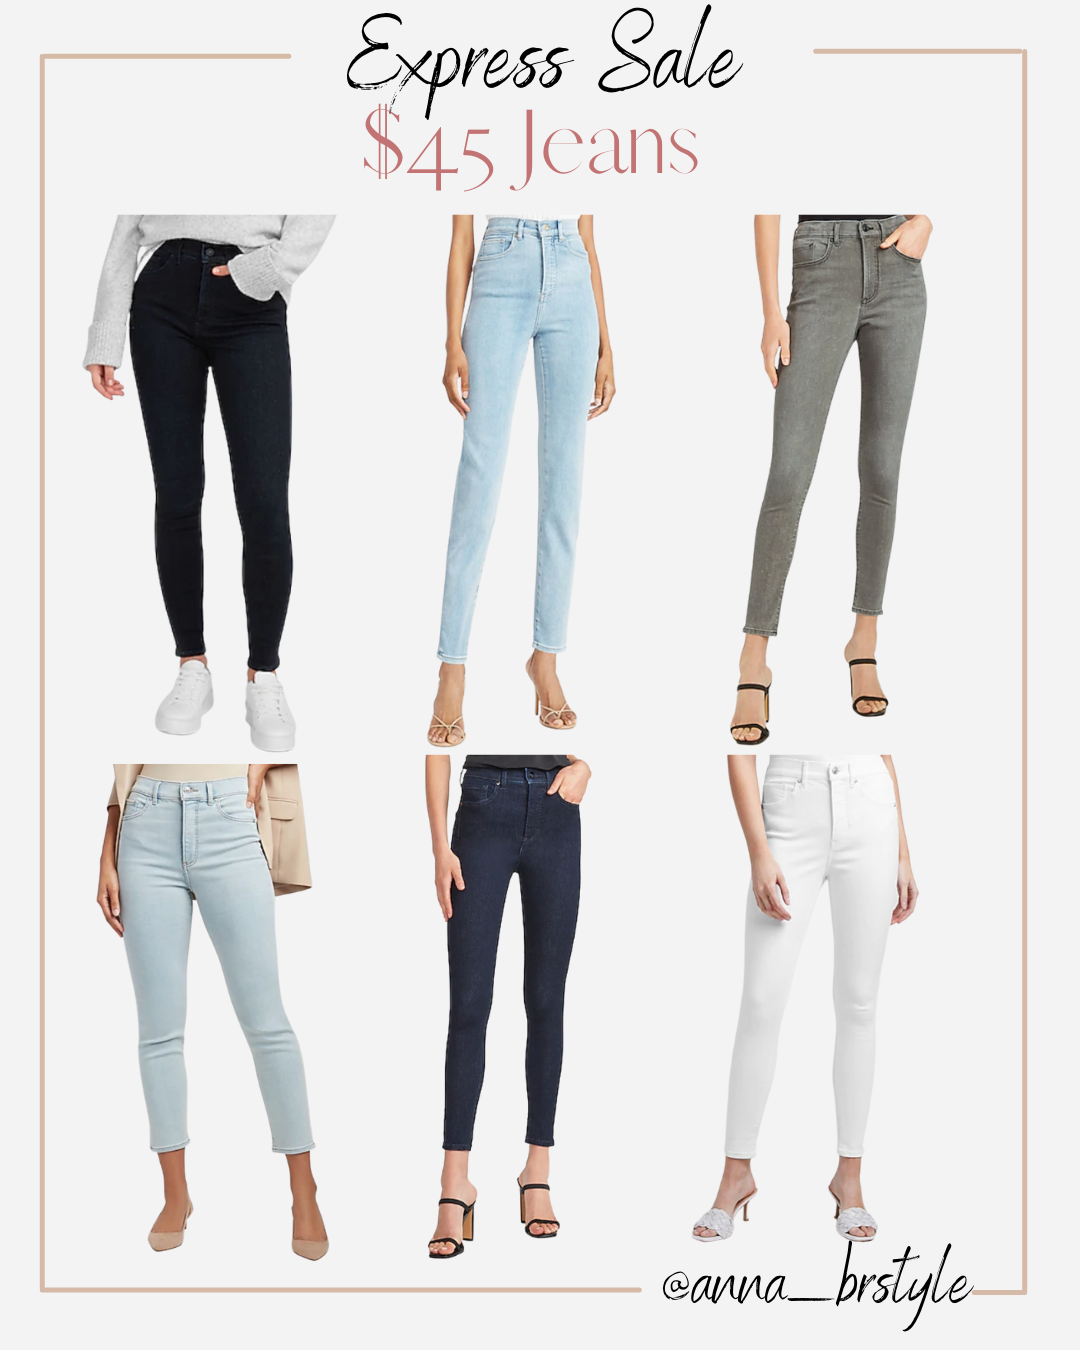 Express jeans on sale